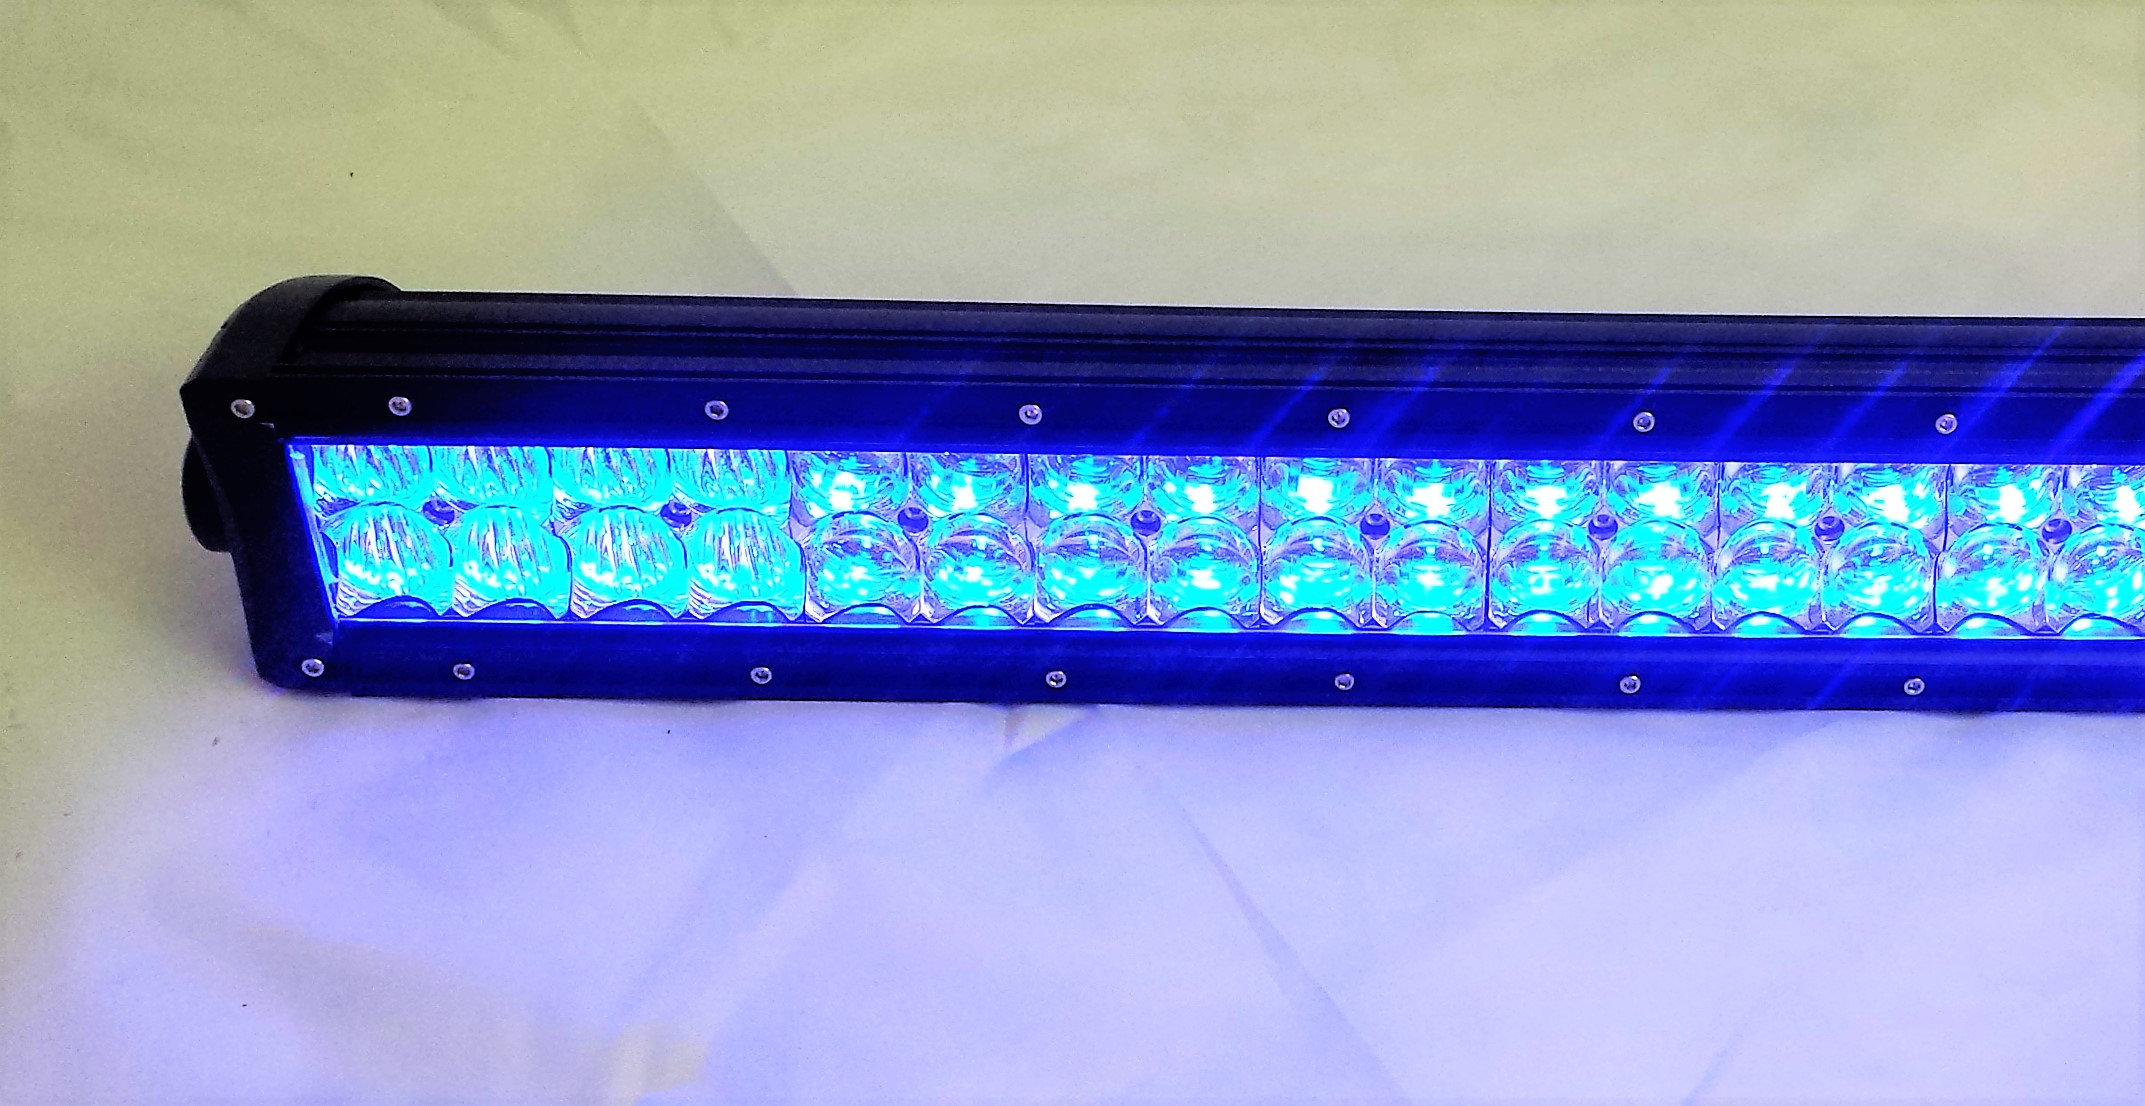 Lighting Rgb Rgb Led Light Bar Bar 50 Inch 300w Color Changing Lifetime Led Lights